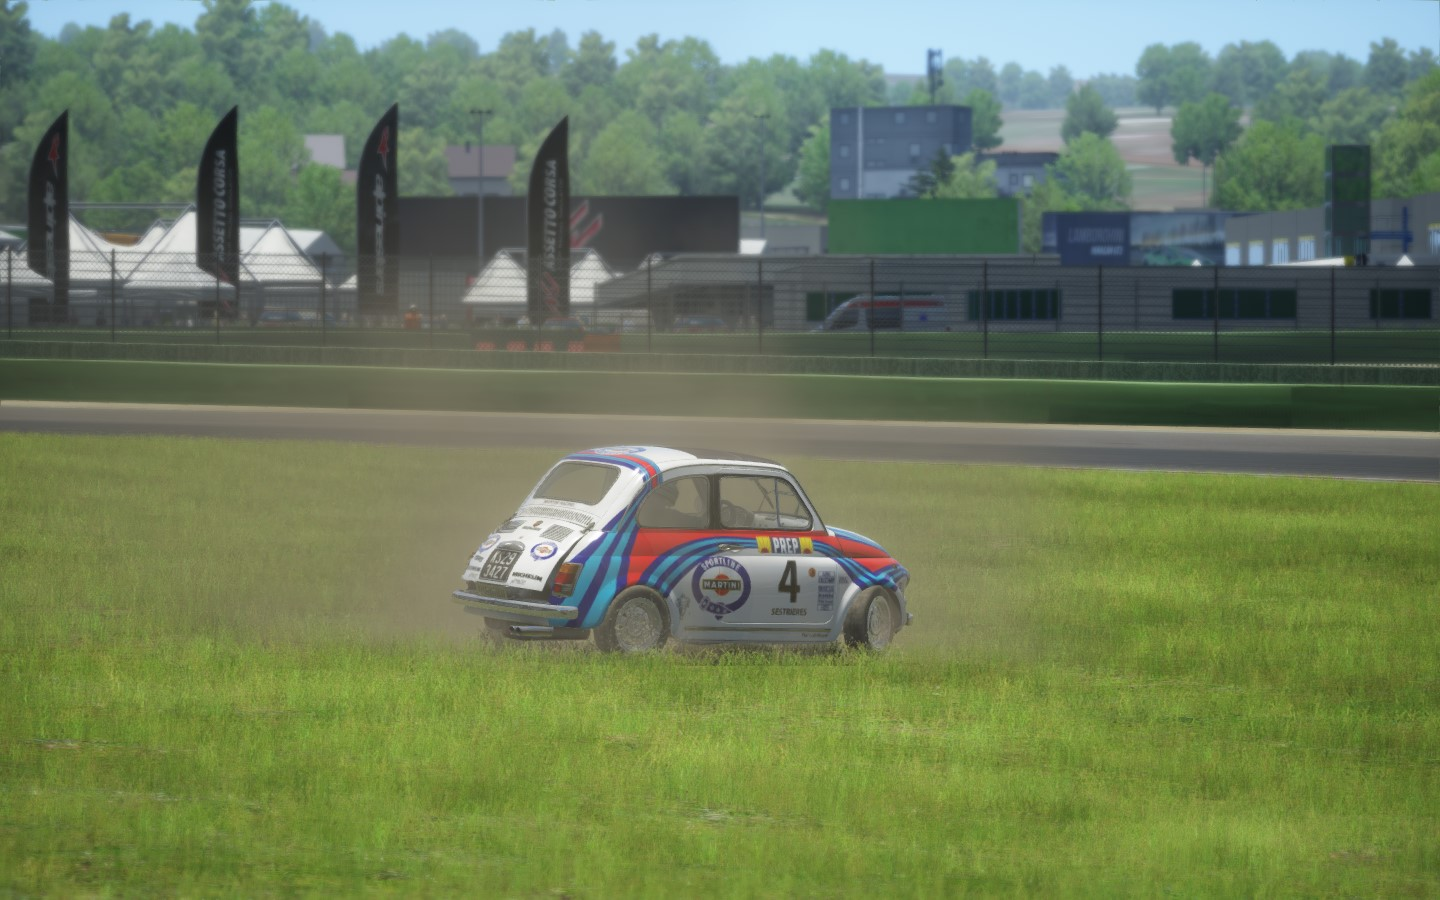 Screenshot_ks_abarth_595ss_ks_vallelunga_22-4-116-22-11-56.jpg